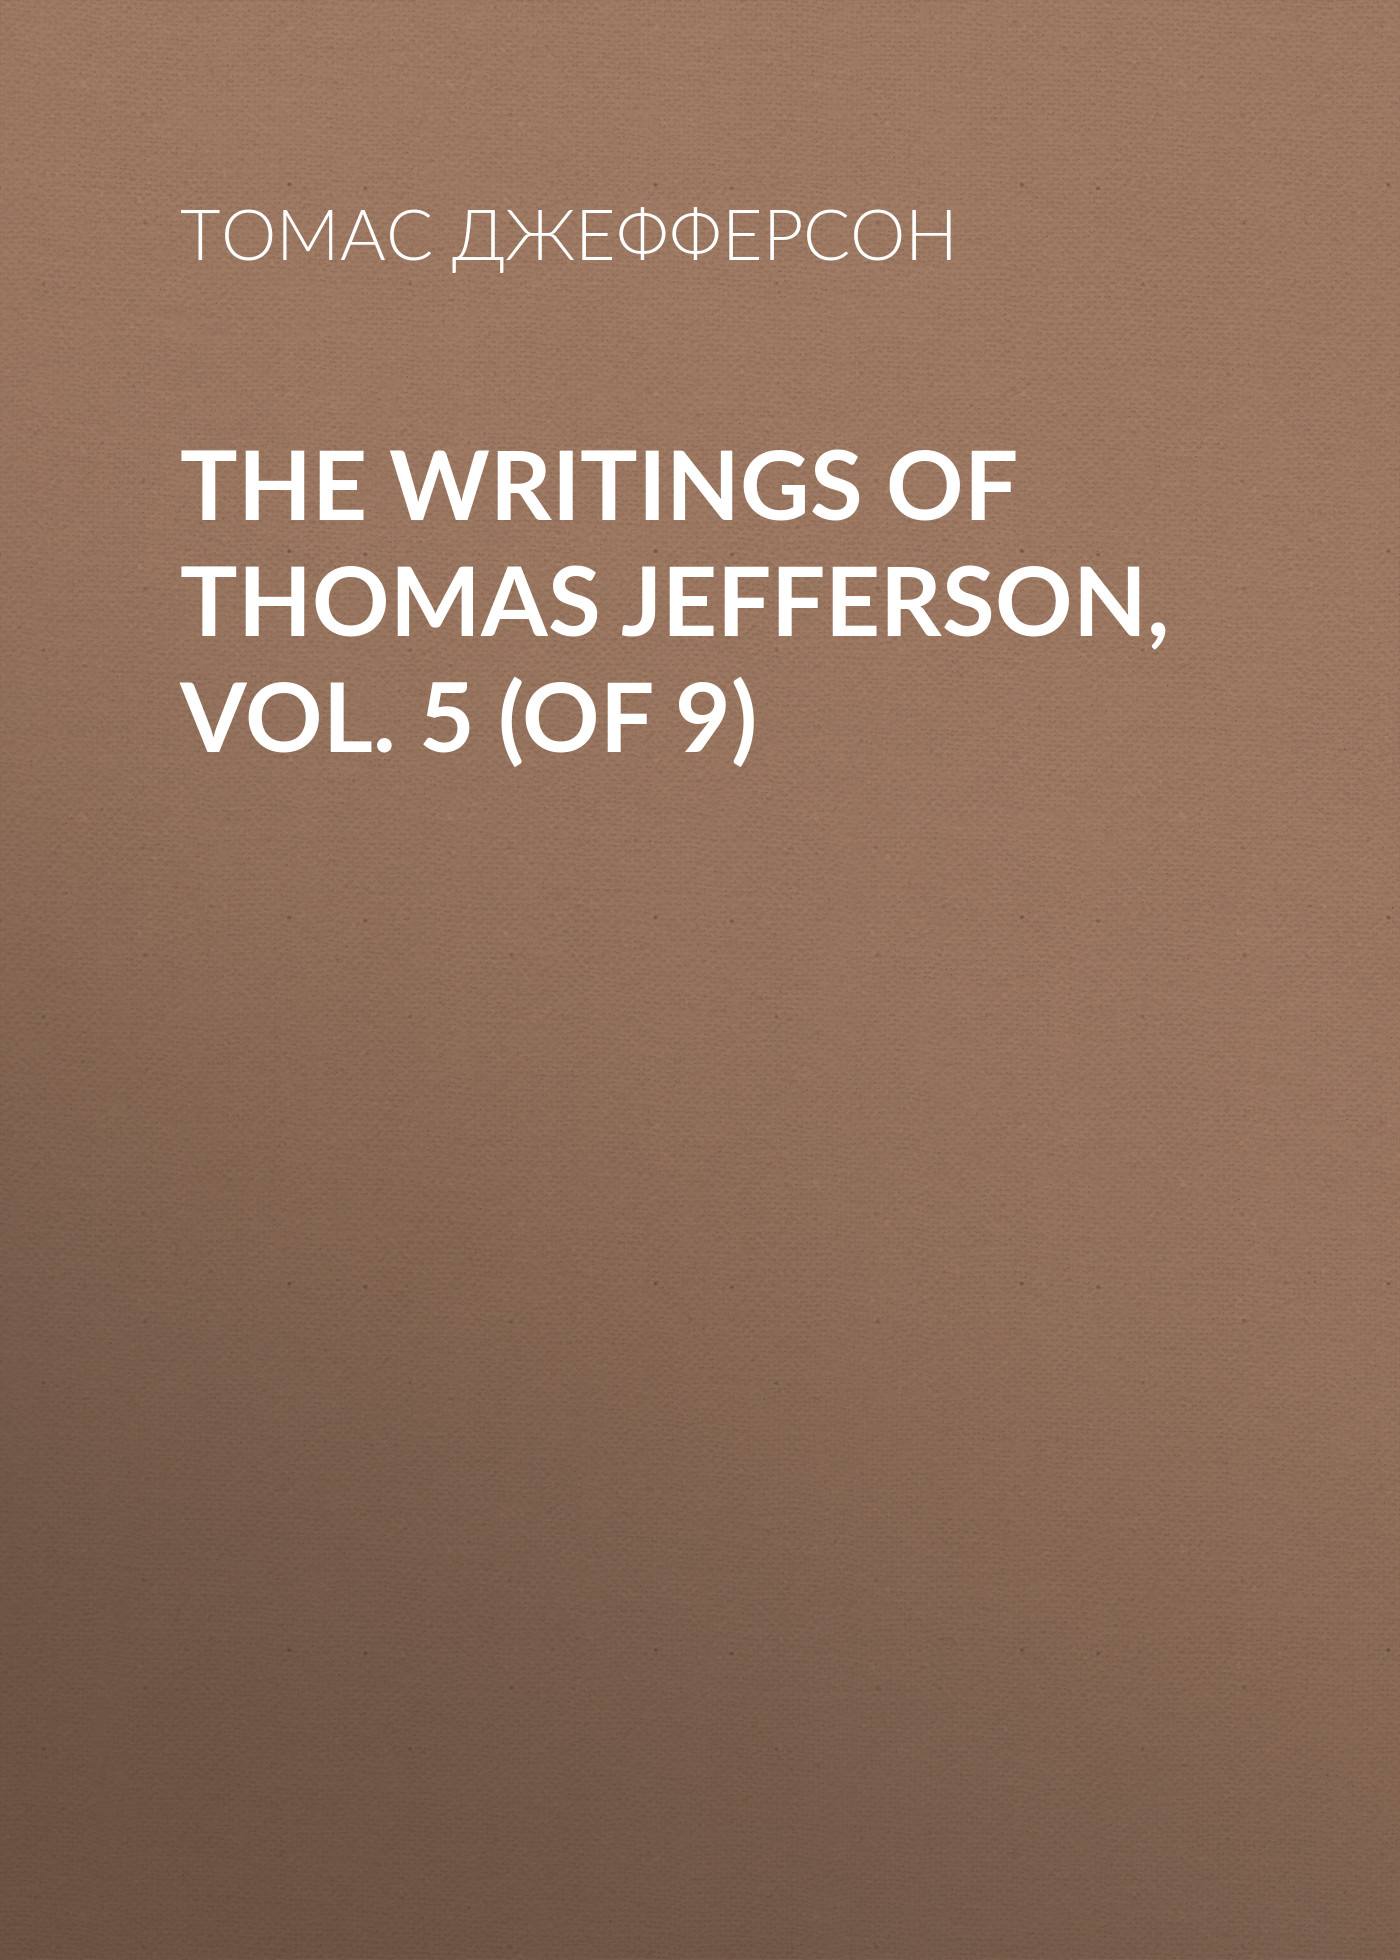 Томас Джефферсон The Writings of Thomas Jefferson, Vol. 5 (of 9) jefferson starship the definitive concert